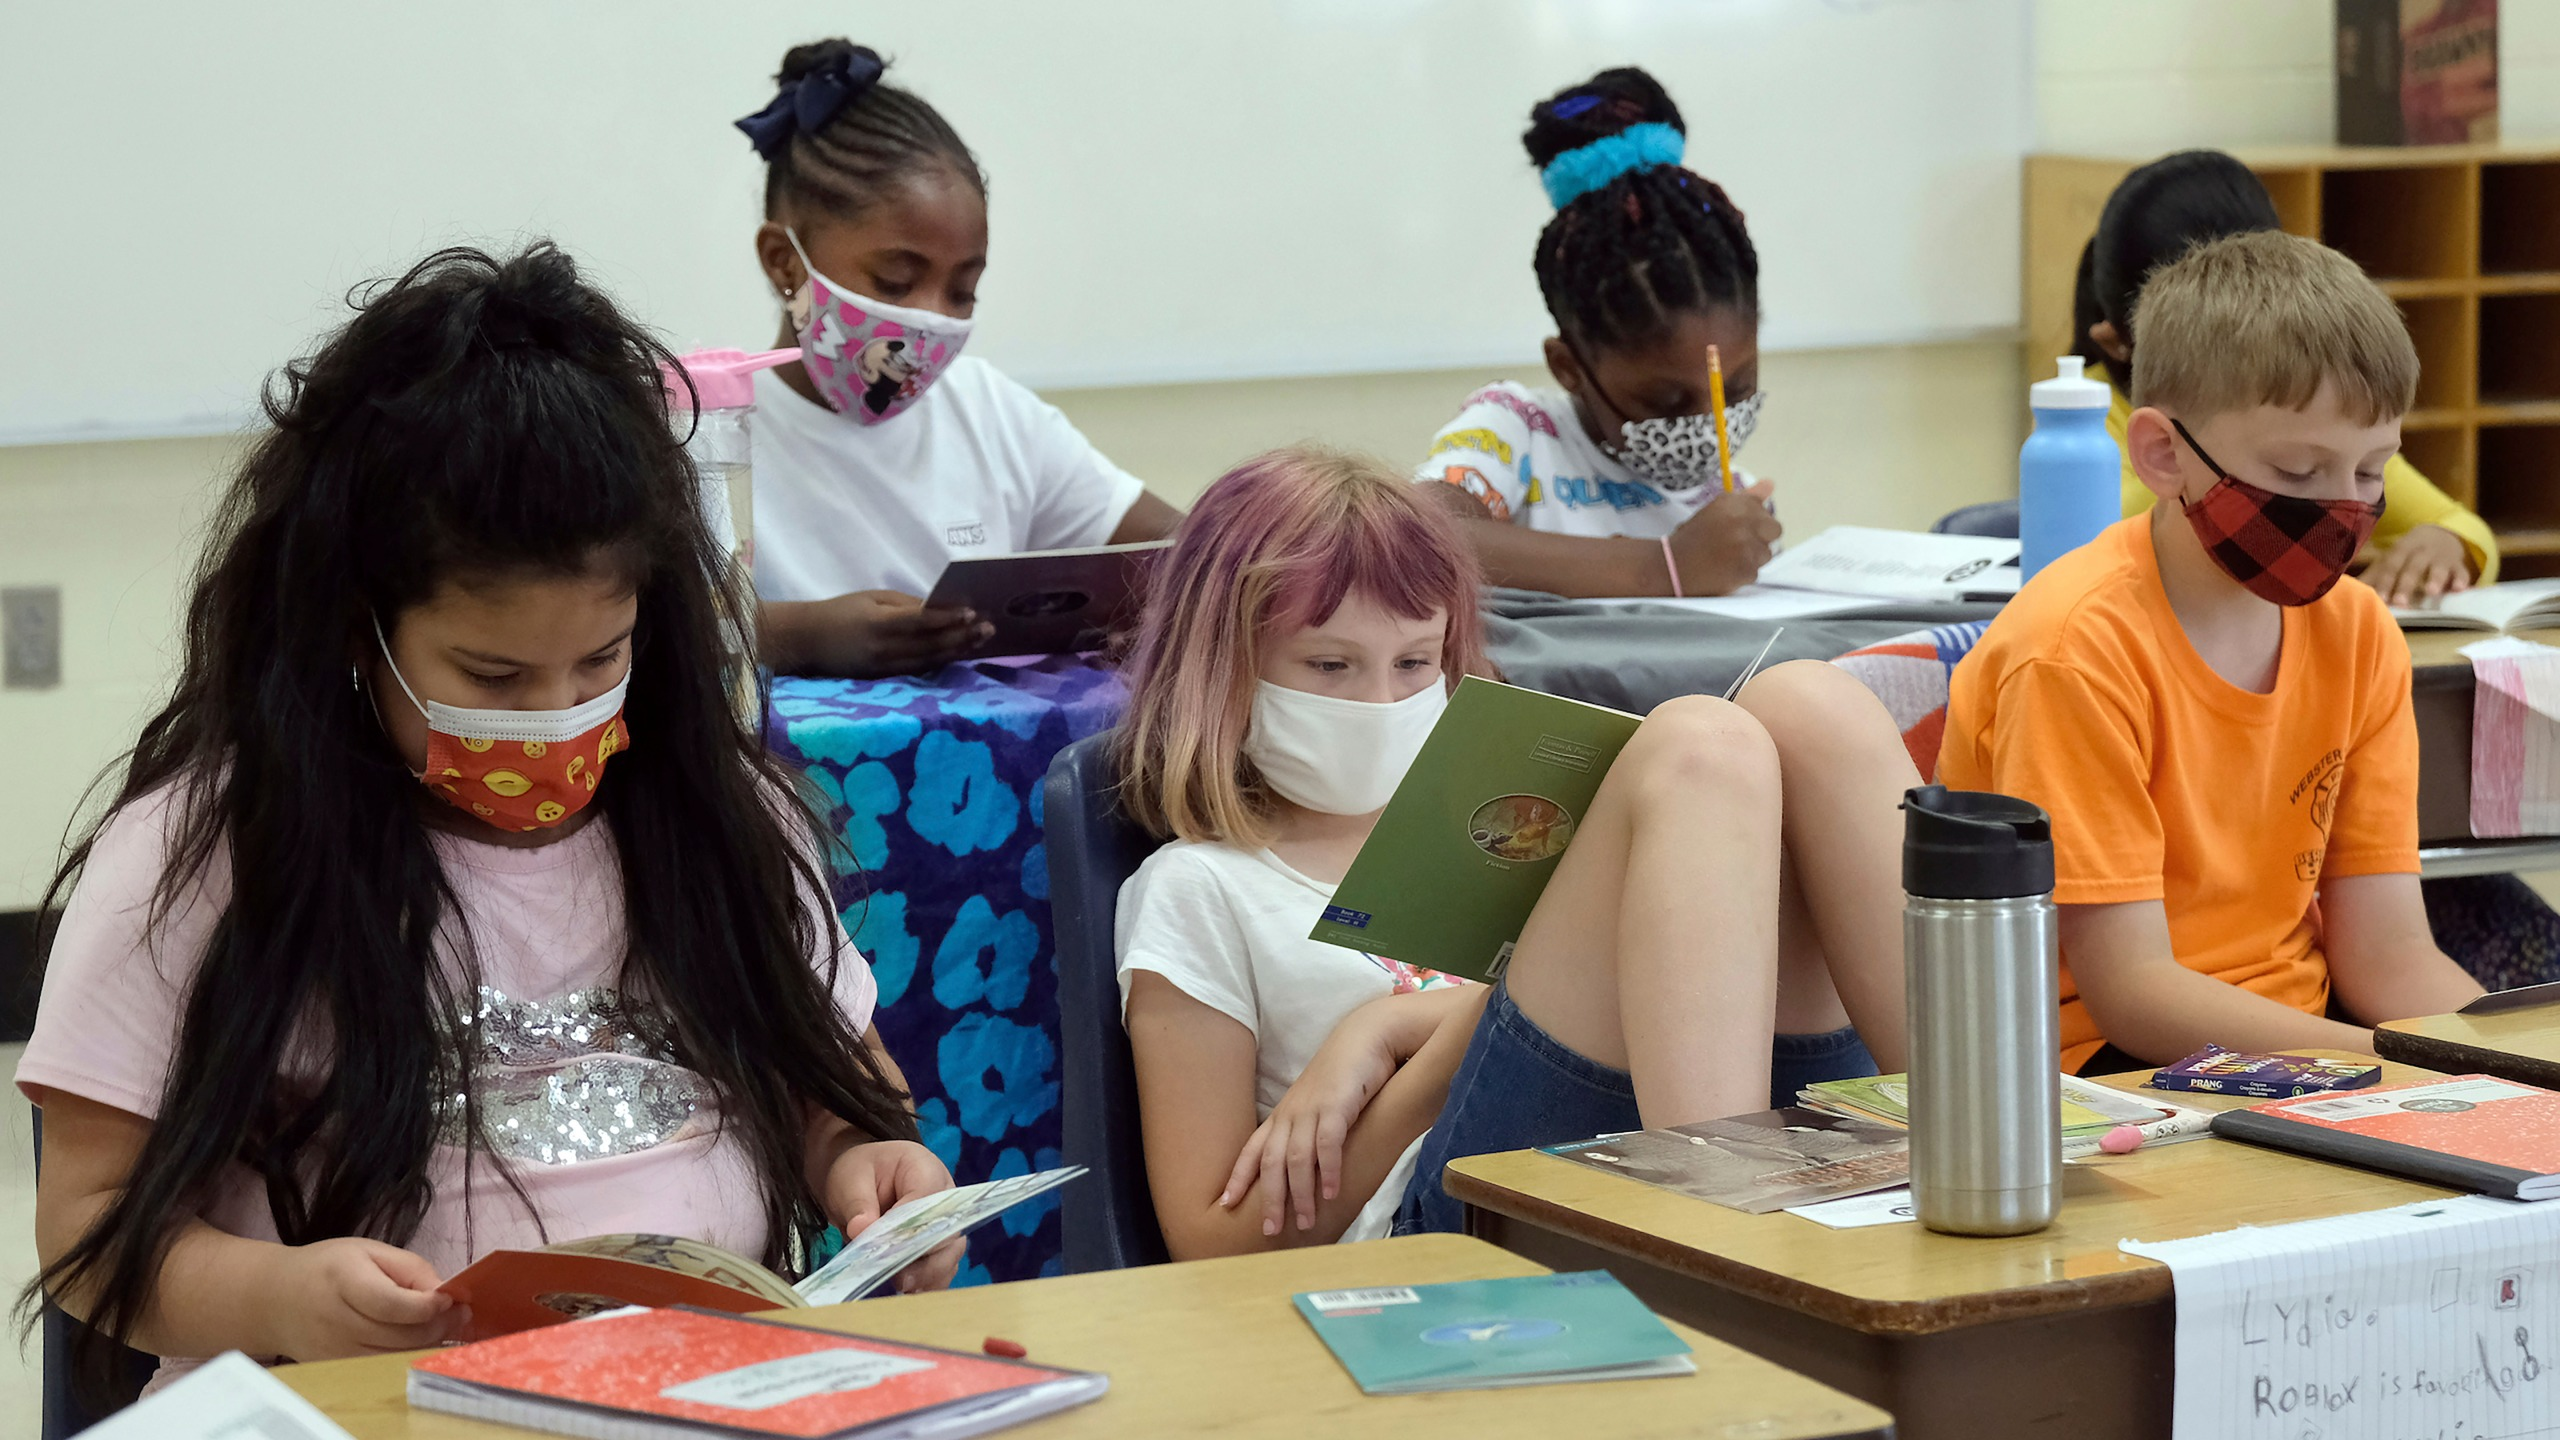 Across the country, school districts were able to greatly expand their summer offerings by leveraging federal pandemic relief funding.